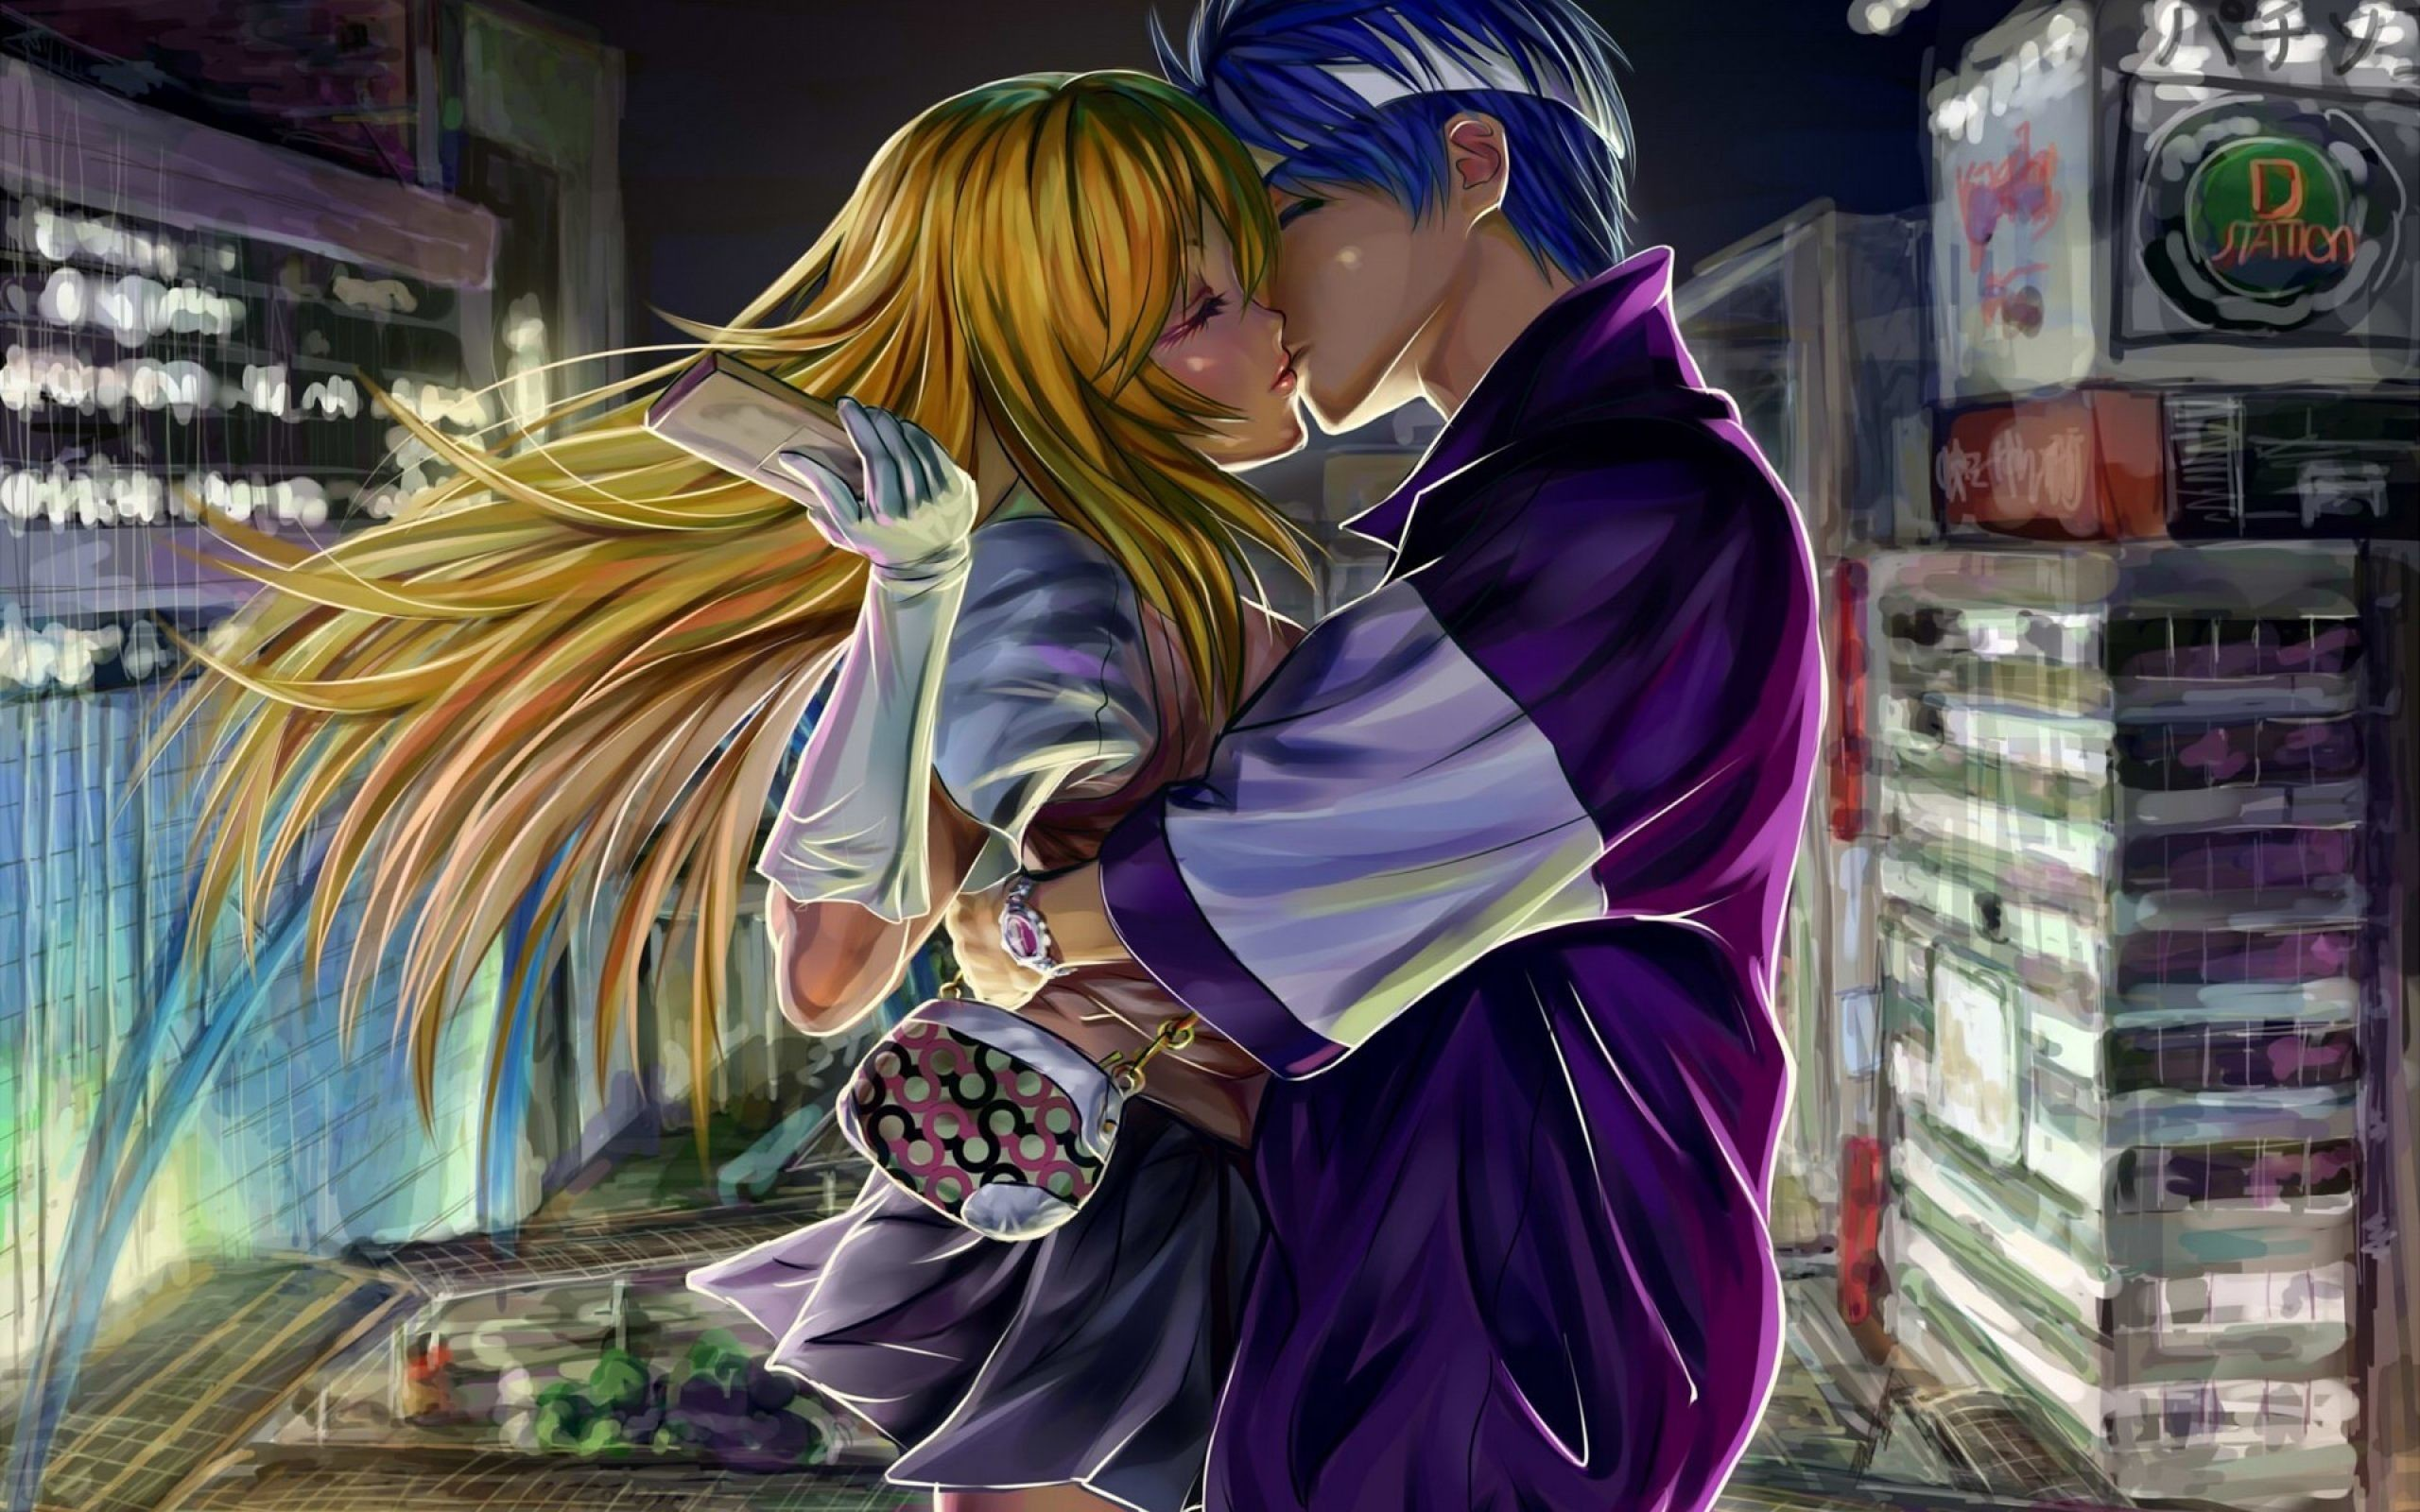 wallpaper.wiki-Cute-Anime-Couple-Background-Download-Free-